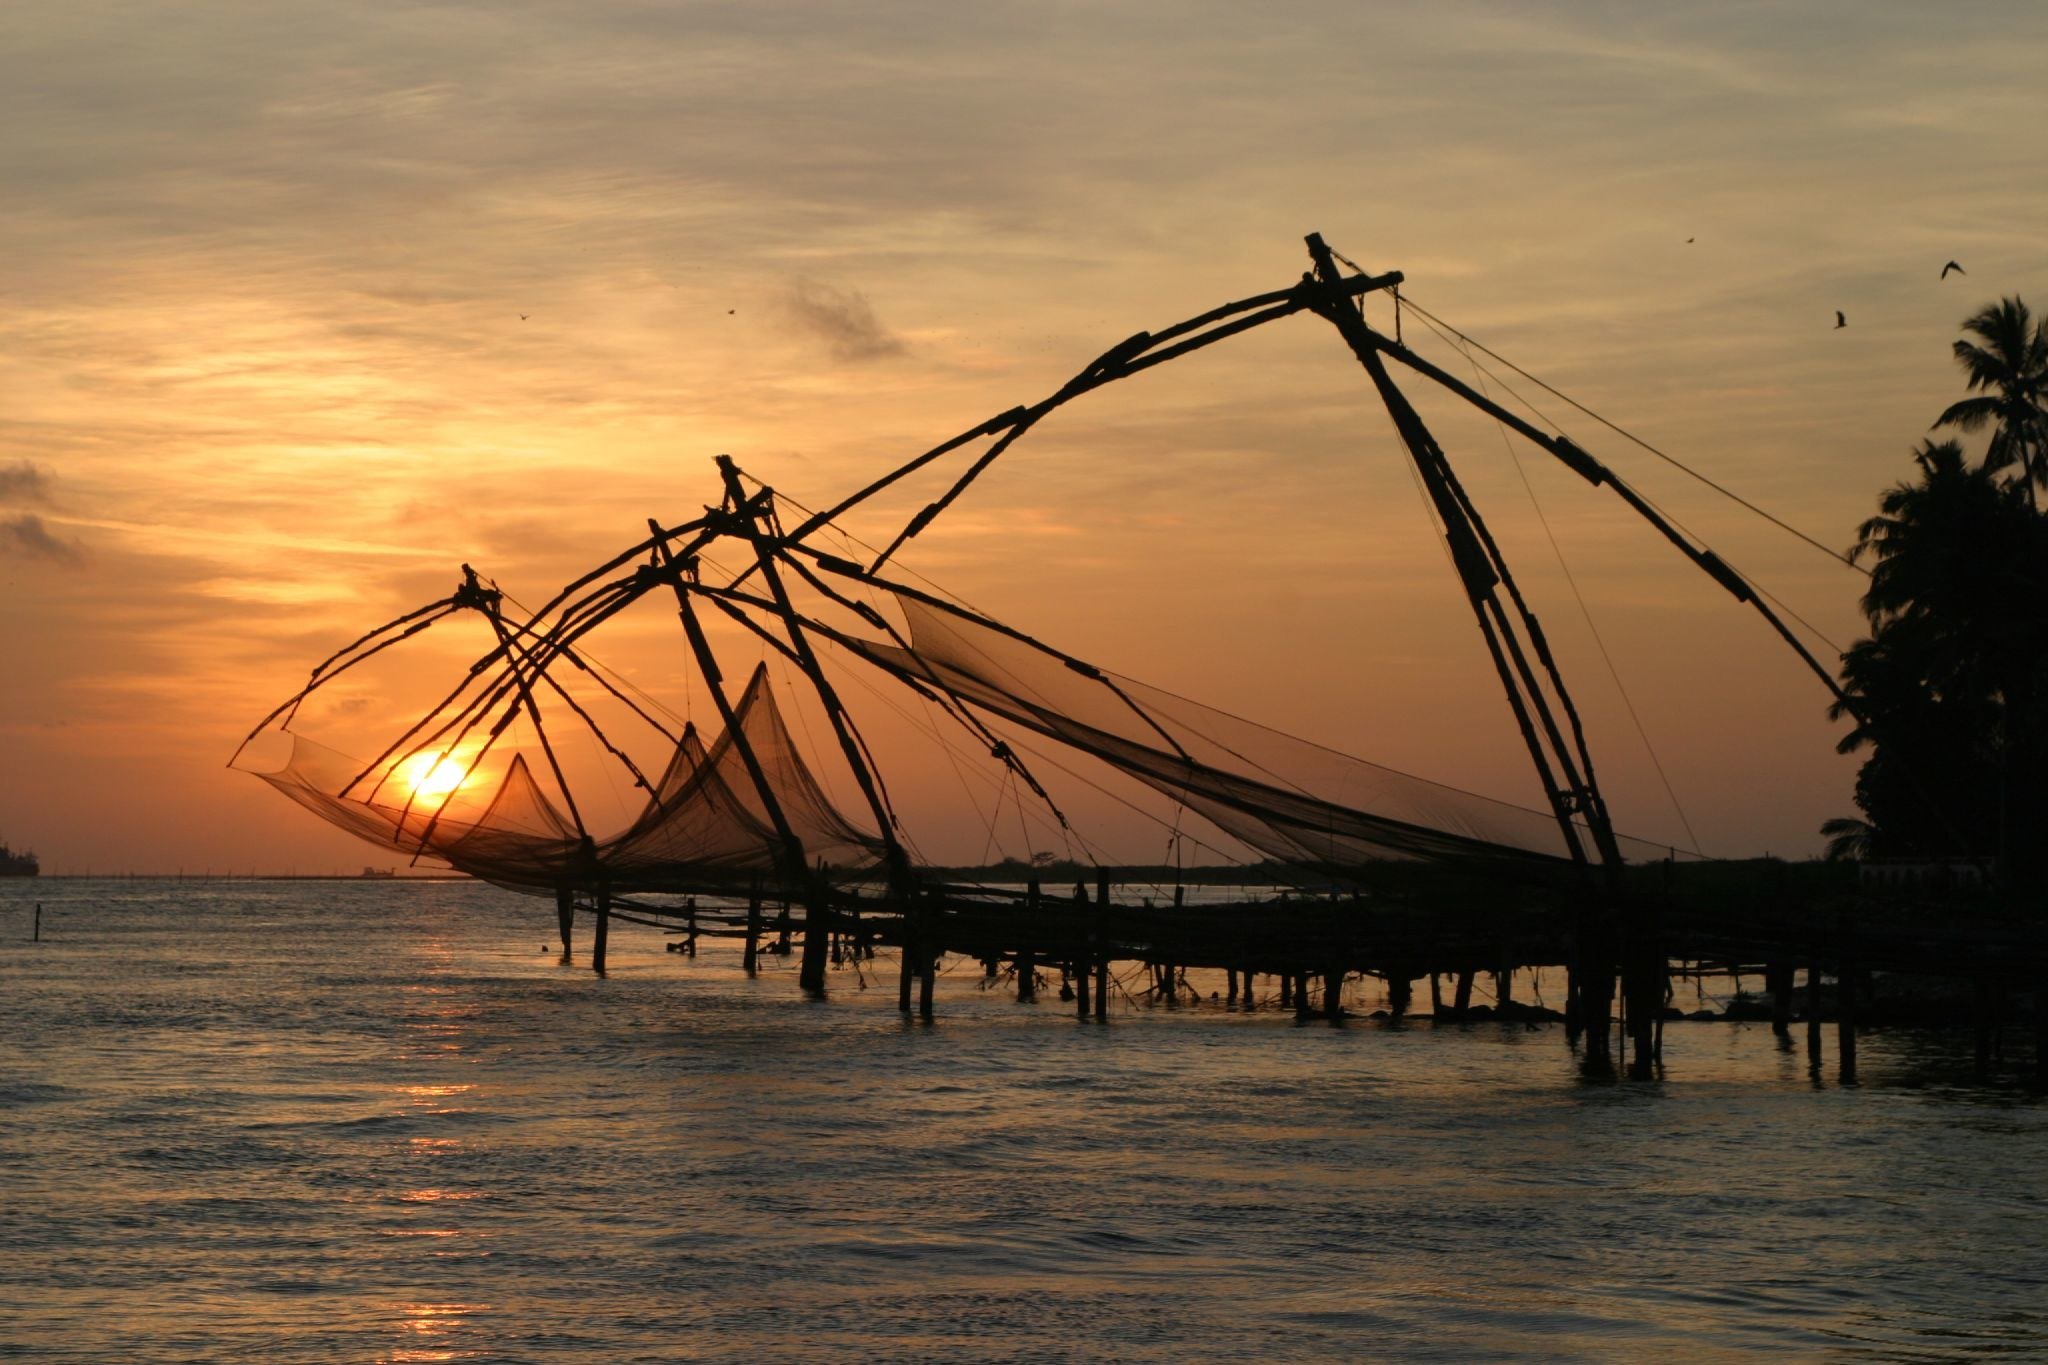 The Best Places to Watch the Sunset in Kochi, India